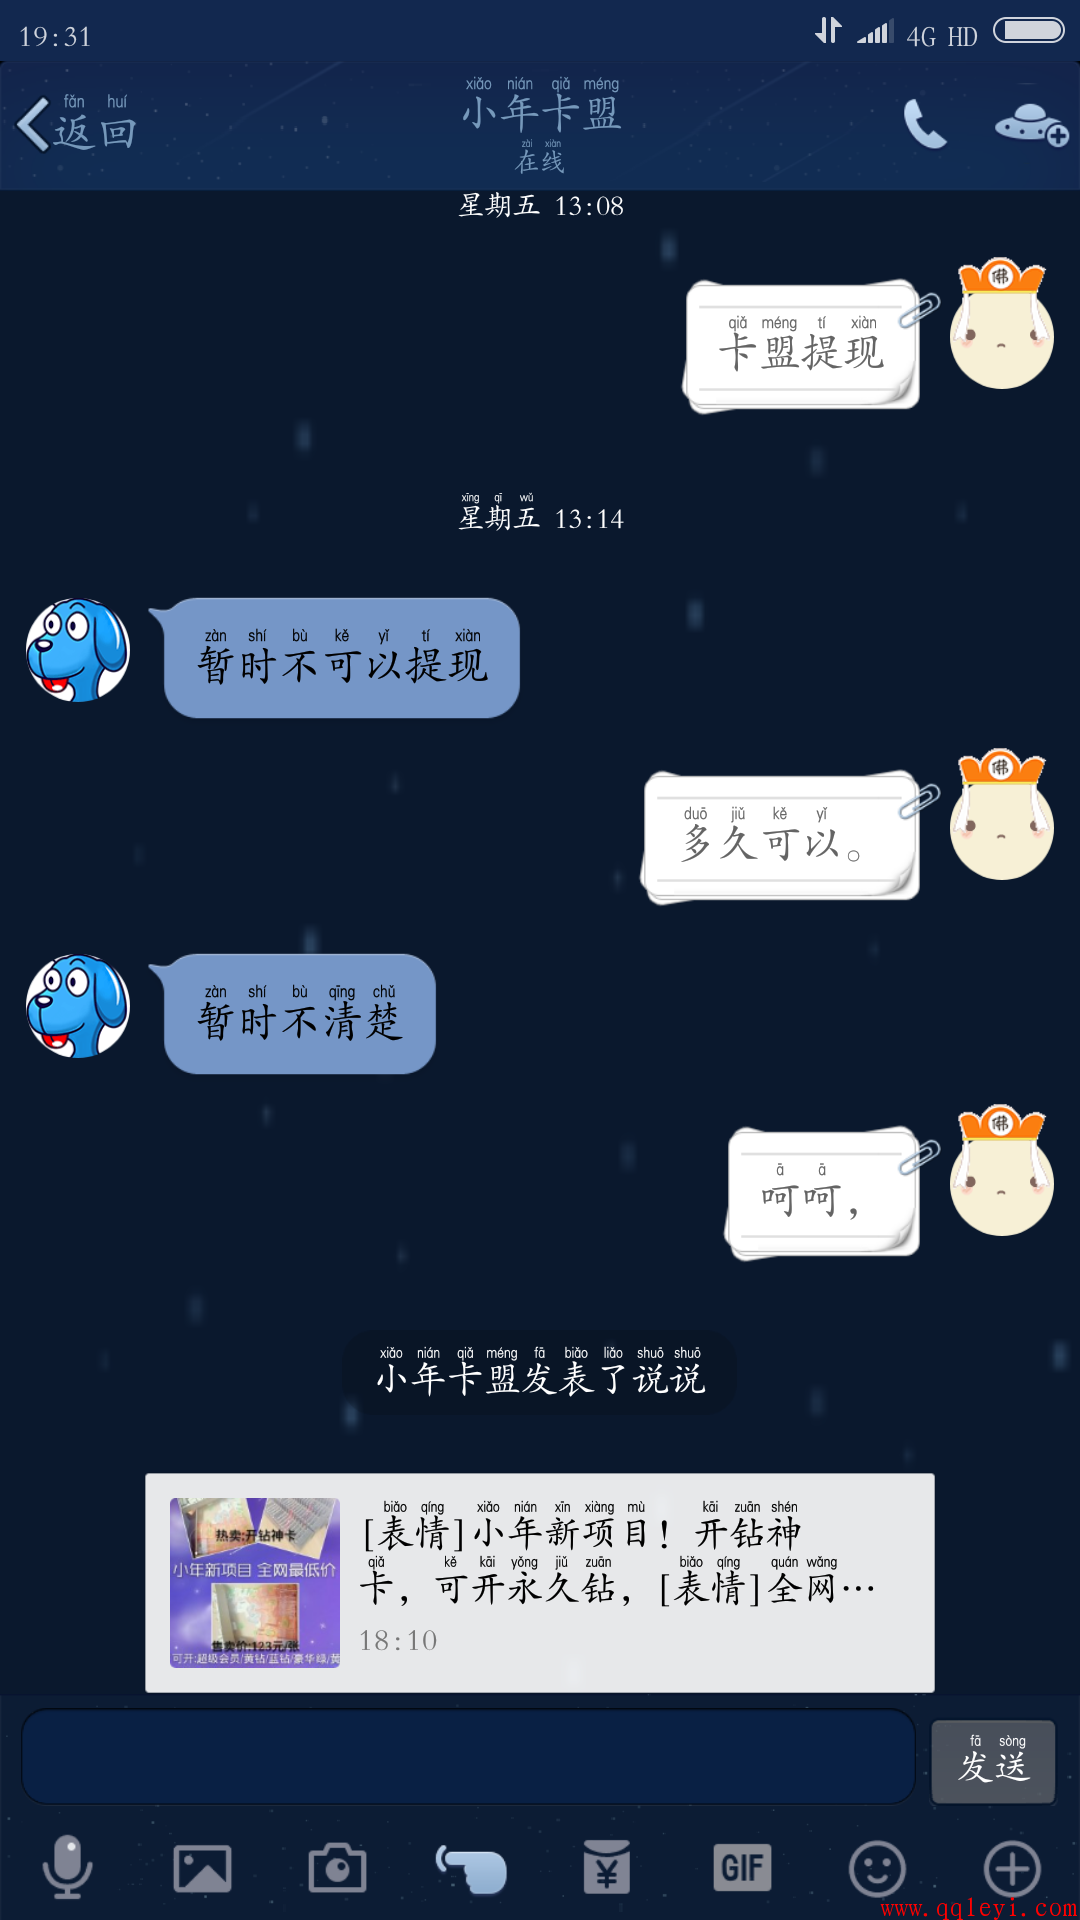 Screenshot_2018-03-22-19-31-07-751_com.tencent.mobileqq.png